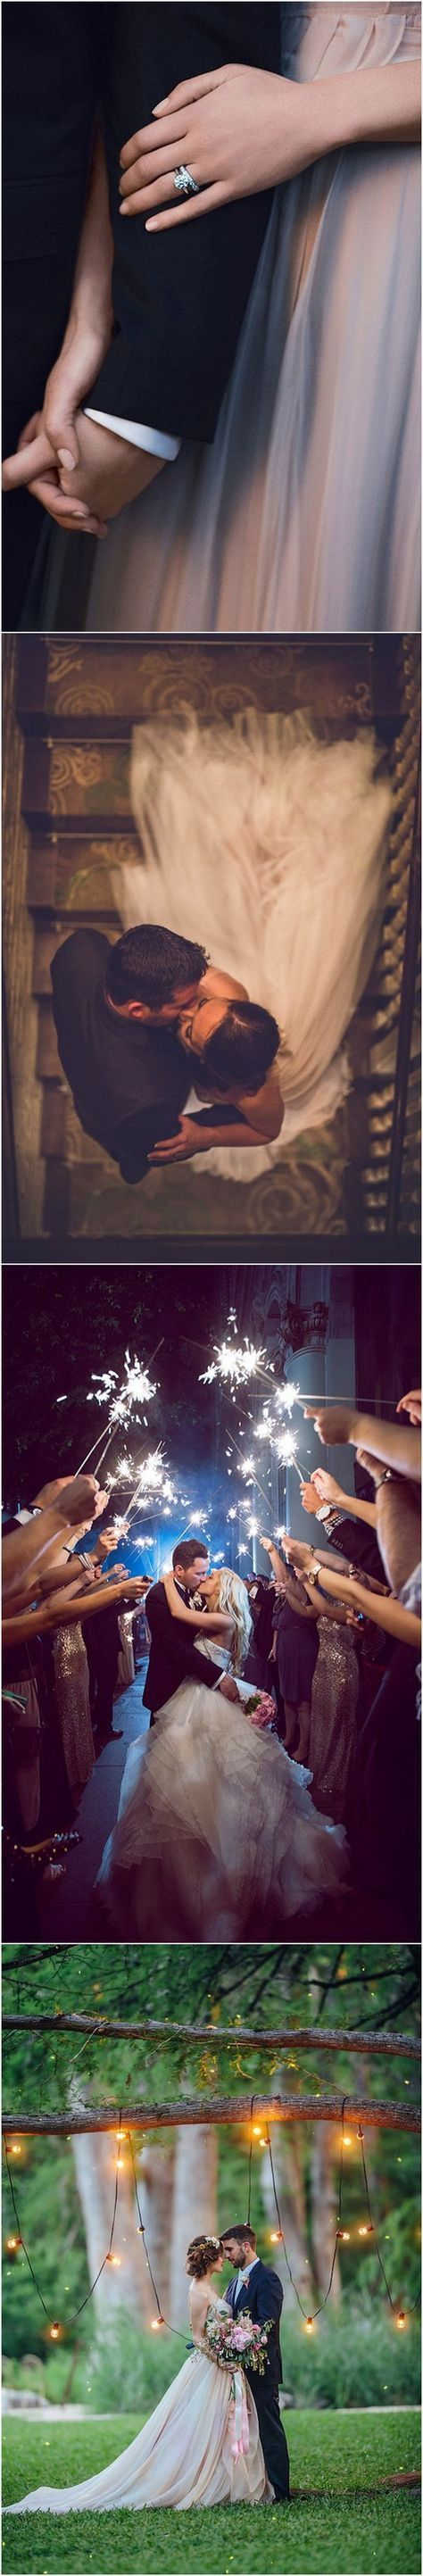 Best bride and groom wedding photo ideas for you. #Wedding #Photography